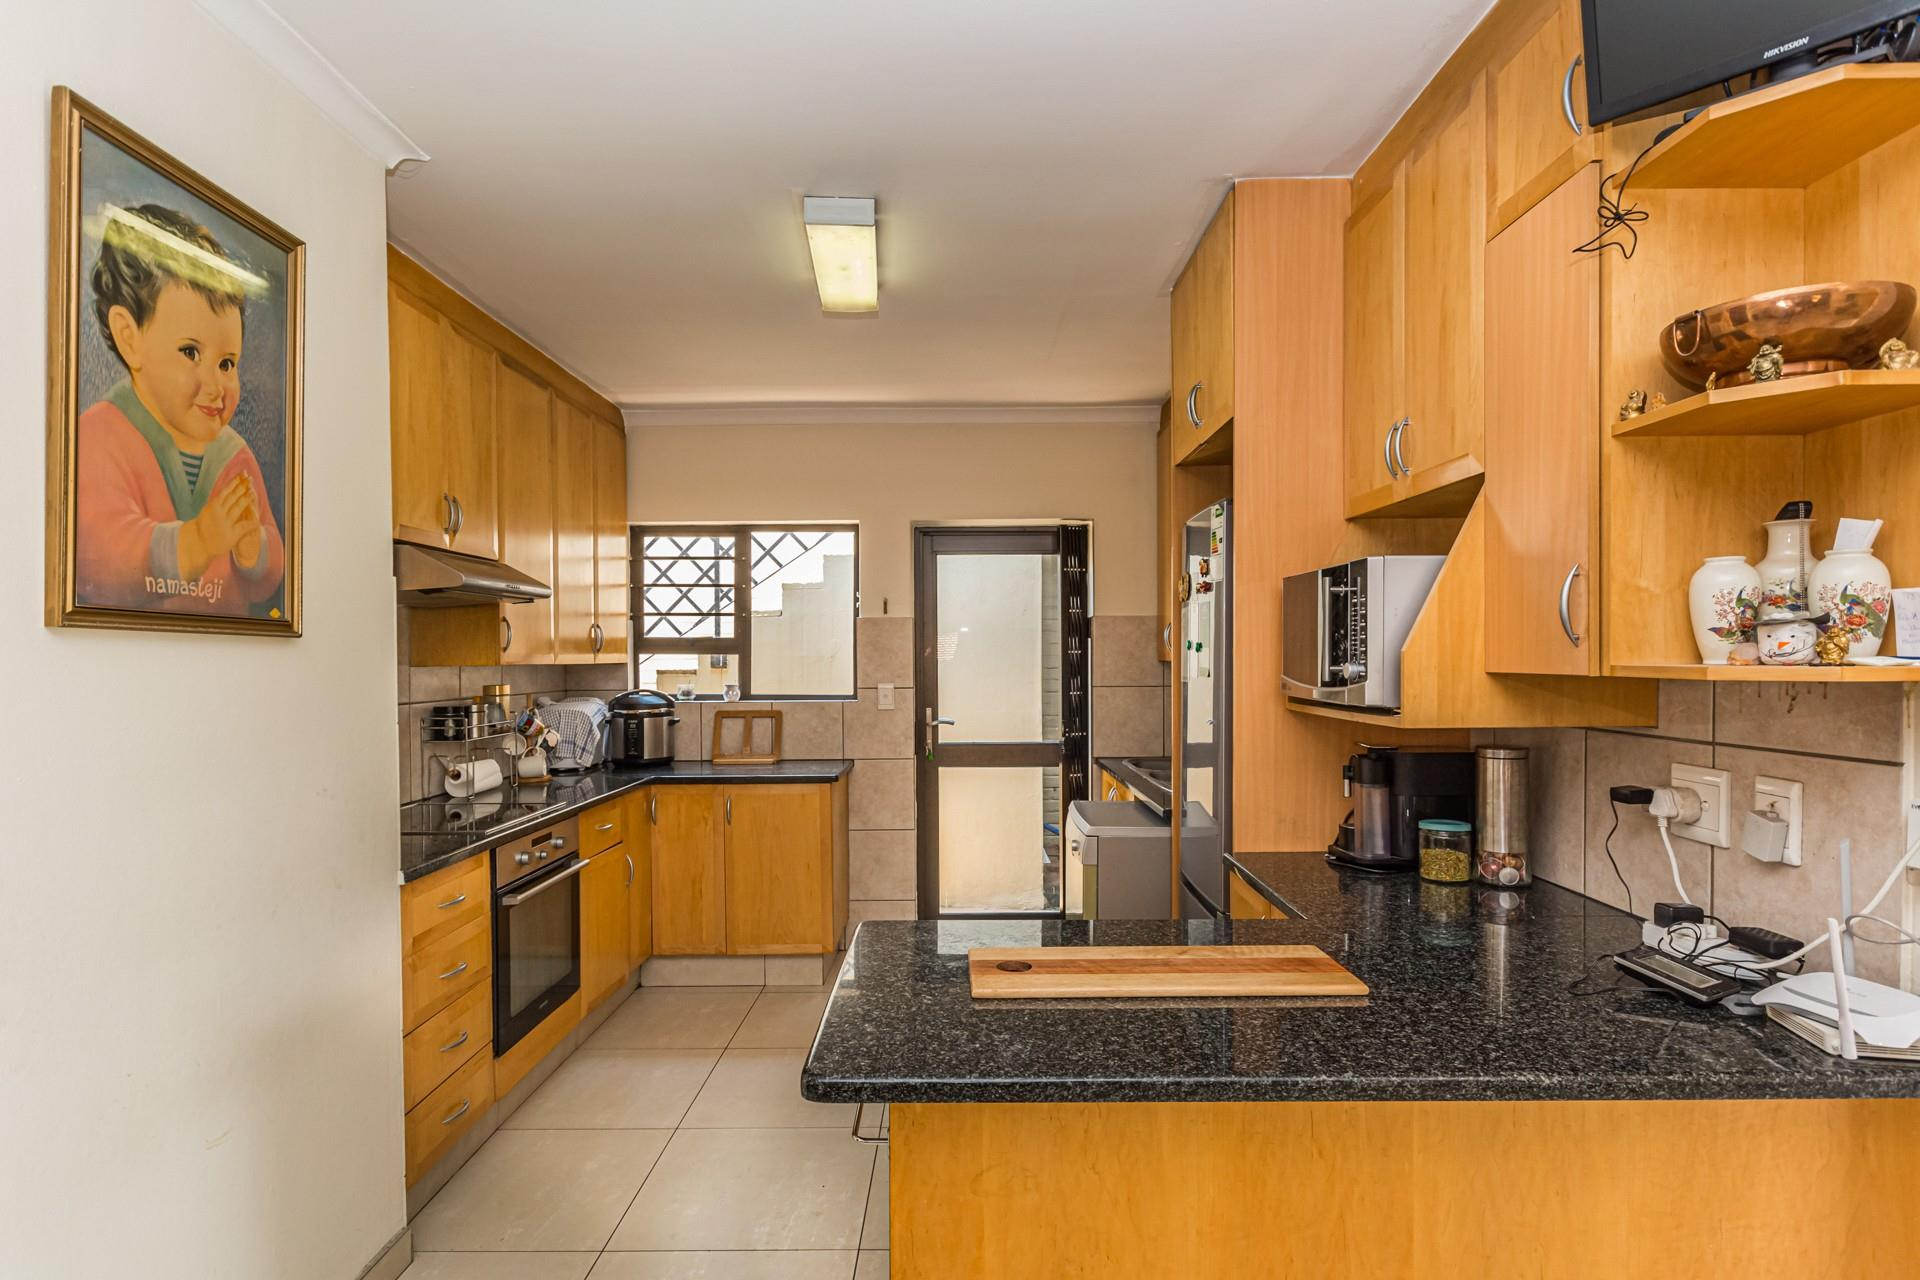 4 Bedroom House For Sale in North Riding